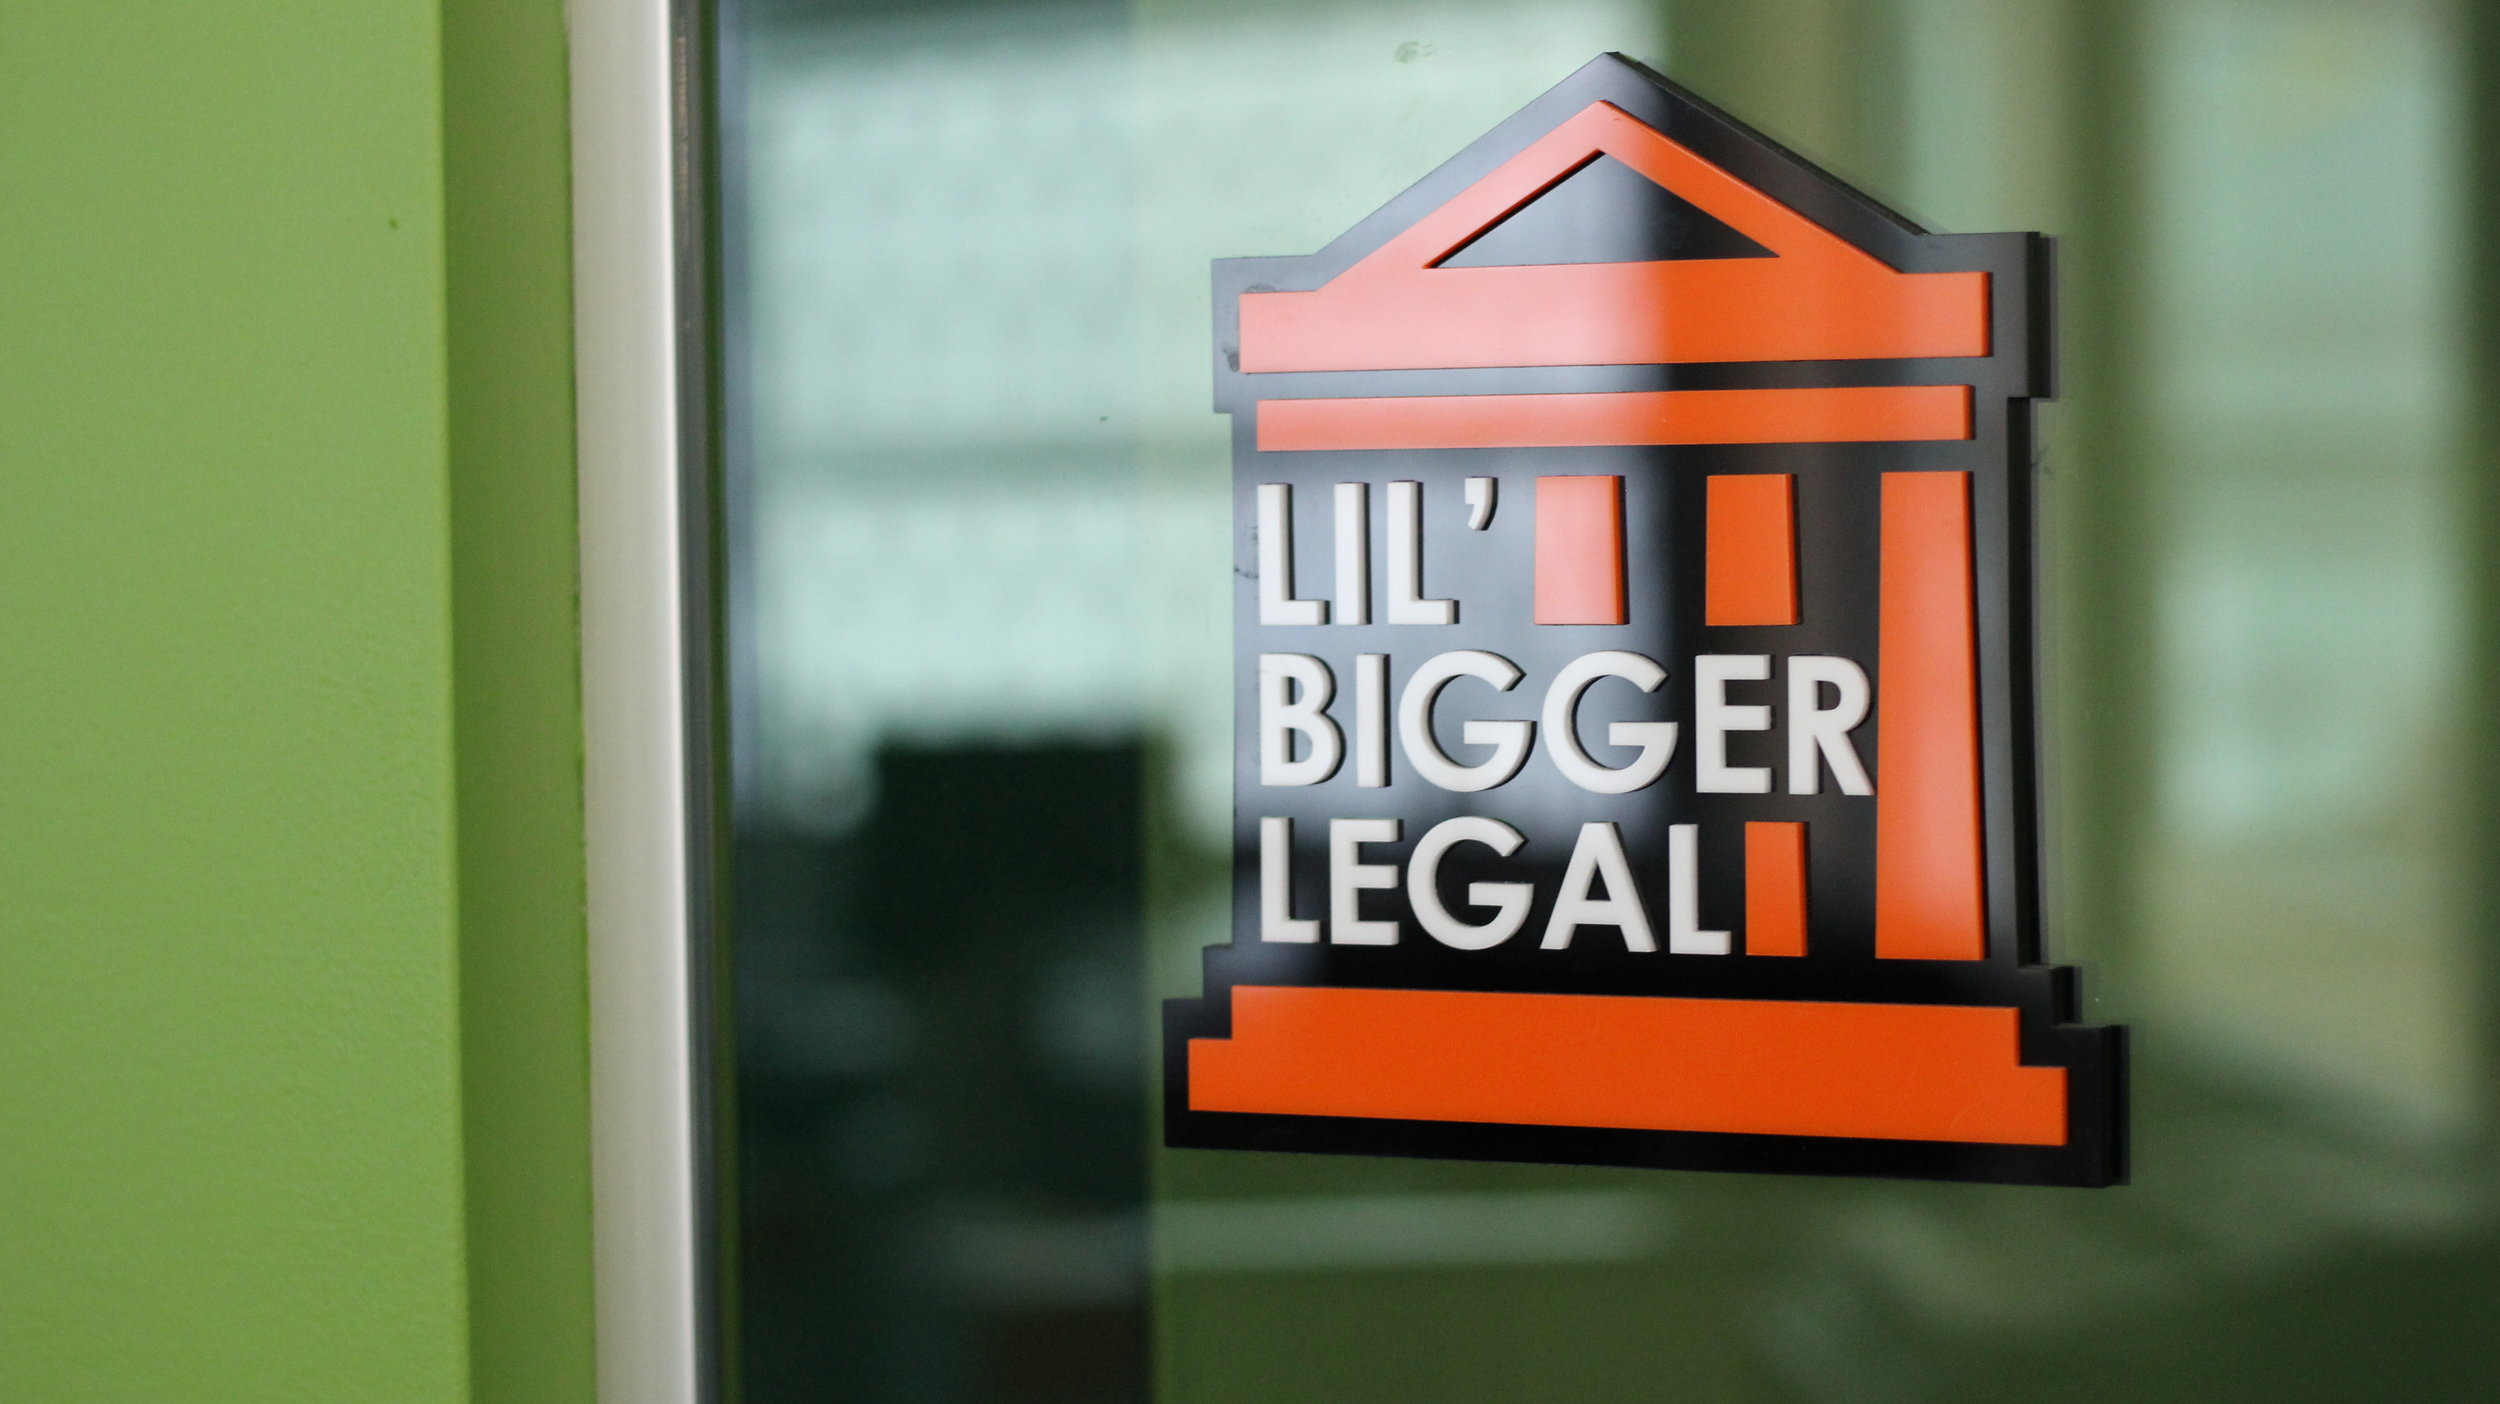 "Conference Room Sign   The Legal Team within QL needed a conference room sign for their private room. They chose the name ""Lil' Bigger Legal"" since this was the new expanded version of their previous room ""Lil' Legal."" Their building had bright orange and green colors, so I used orange in the sign to contrast with the surrounding green wall."